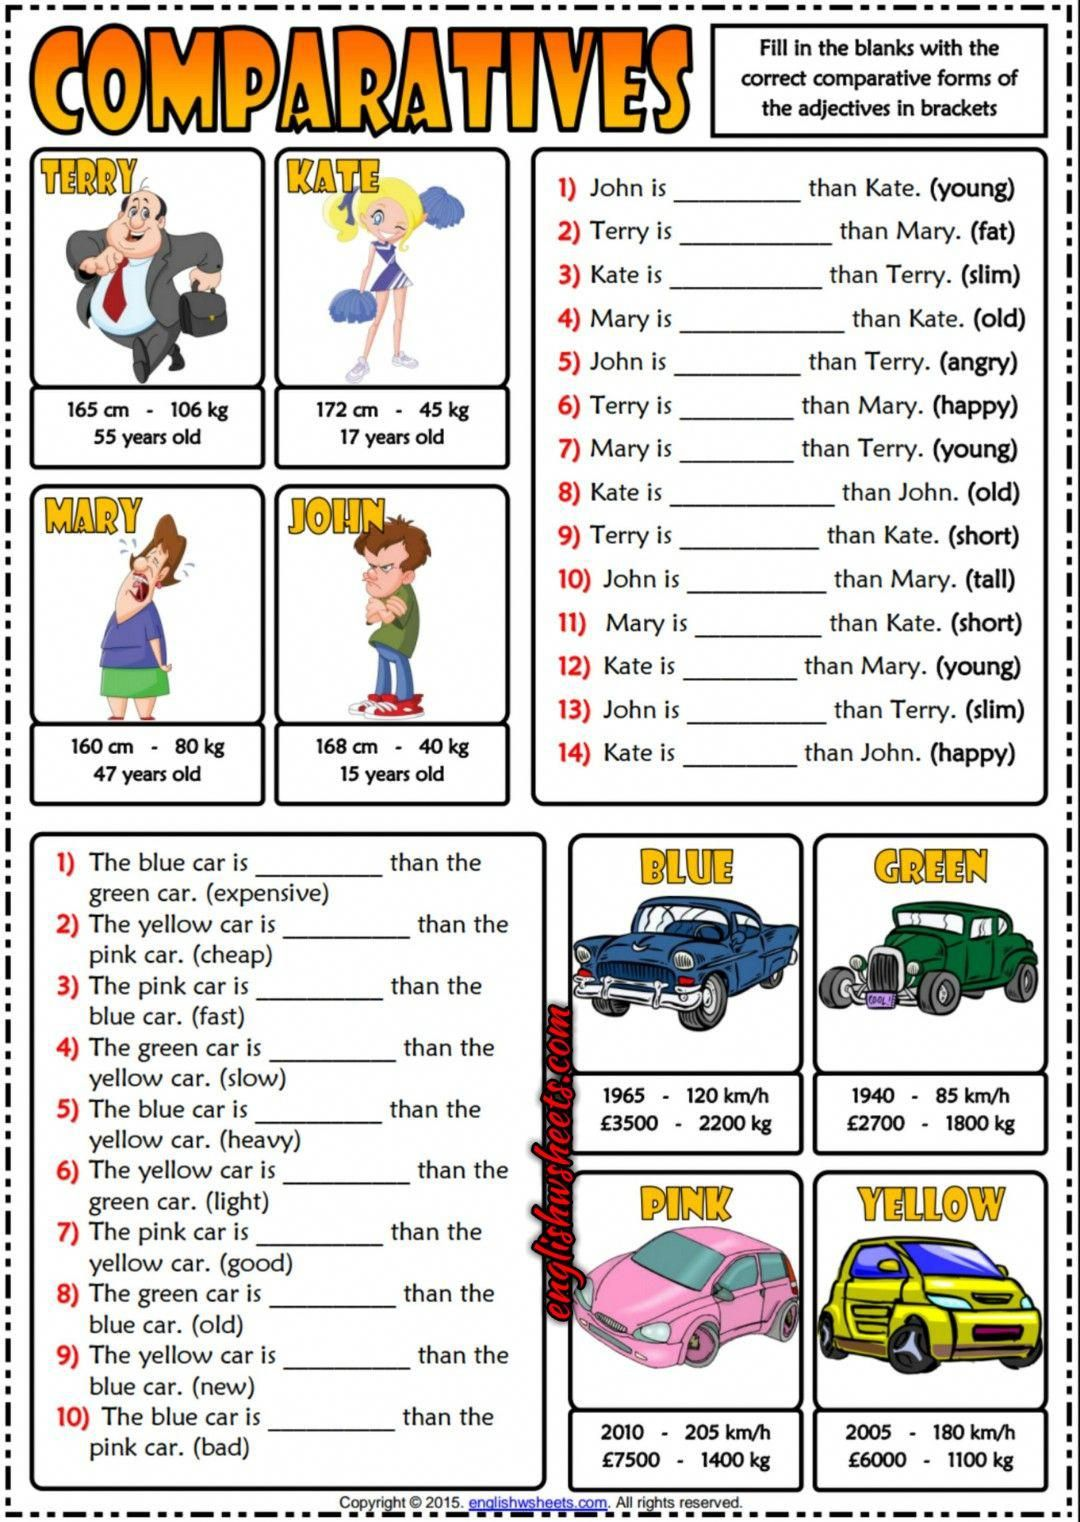 Comparatives Esl Printable Gap Fill Exercises Quiz For